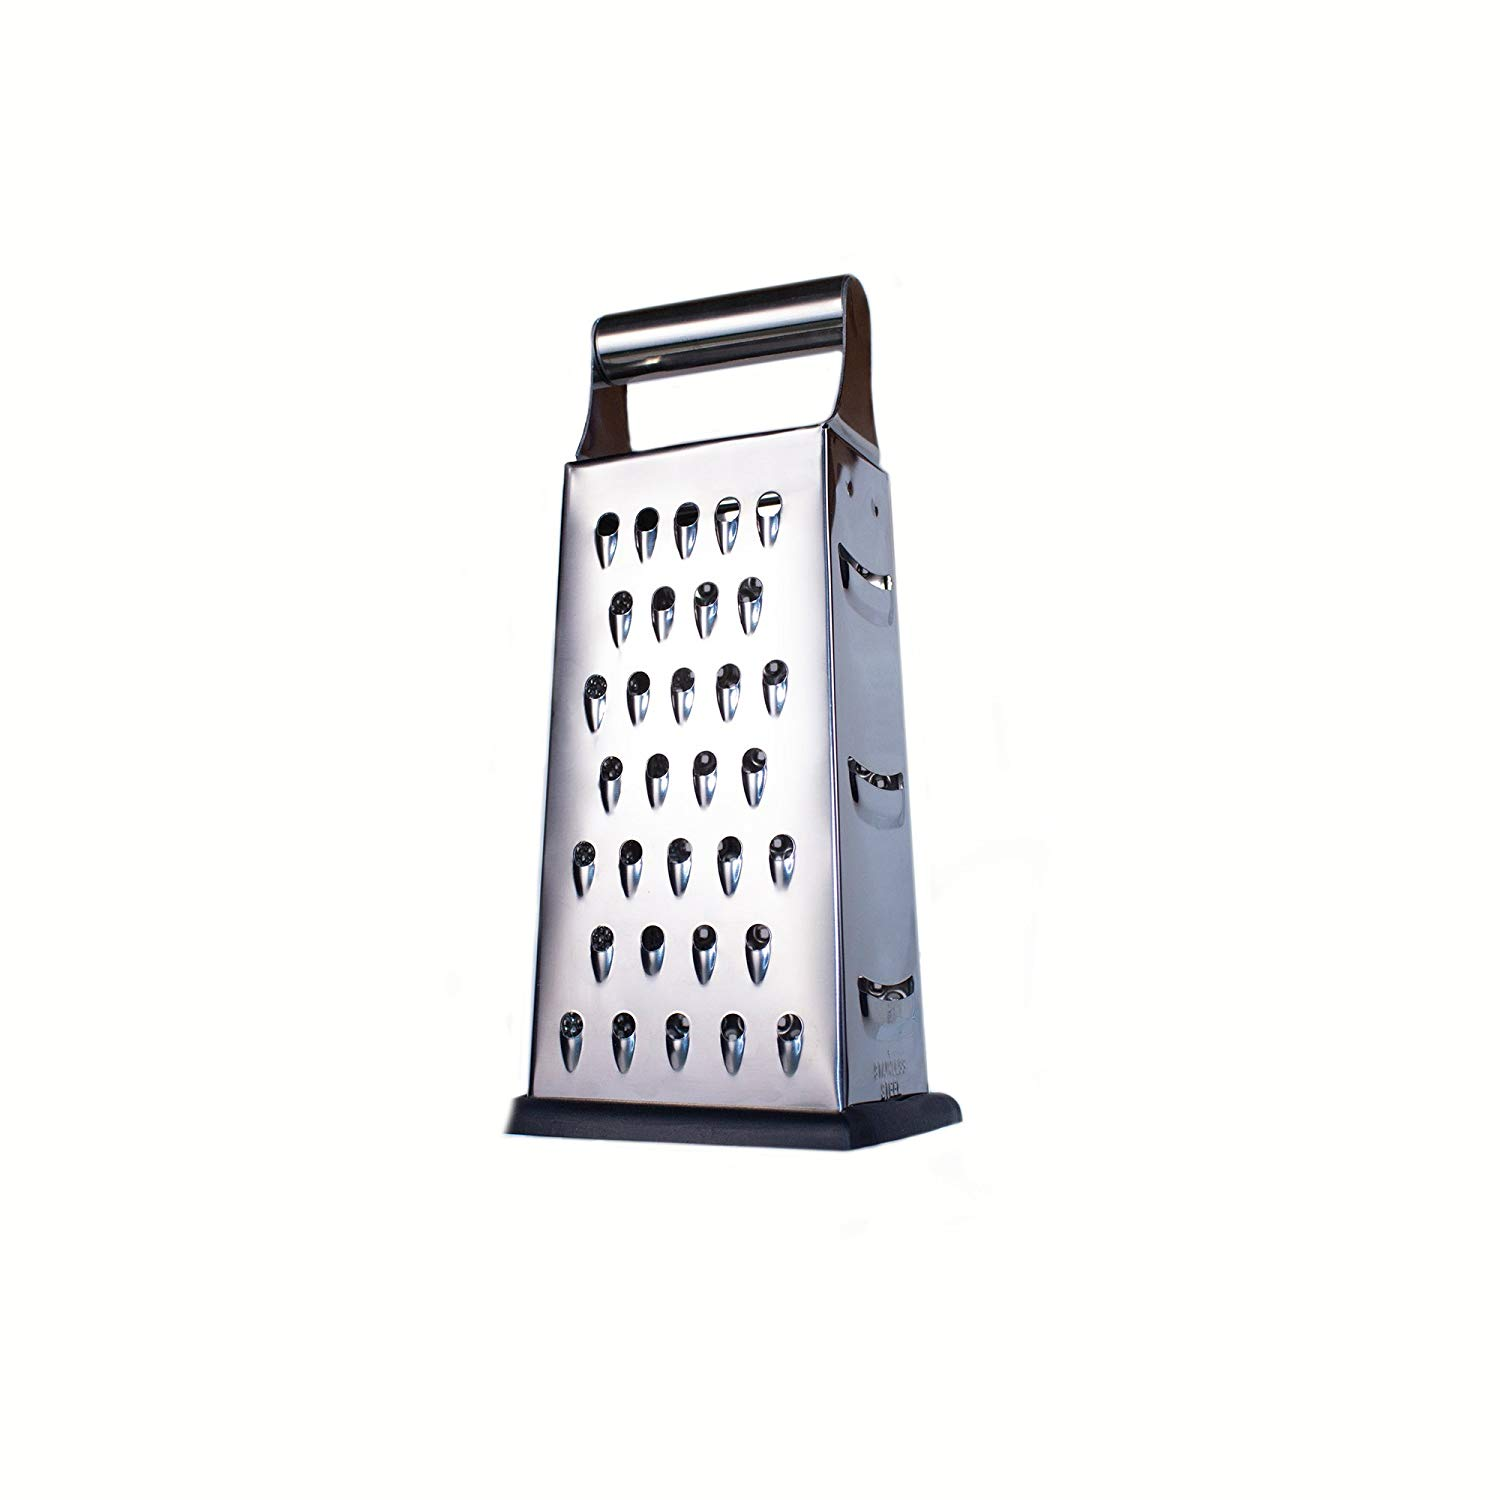 Large Handheld Cheese Grater /& Cheese Catcher Set 4 Sided Stainless Steel Classic Box Style With Nonslip Handle Size Large For Multi-Use Ginger Parmesan Cheese Vegetables 9.5 Inches